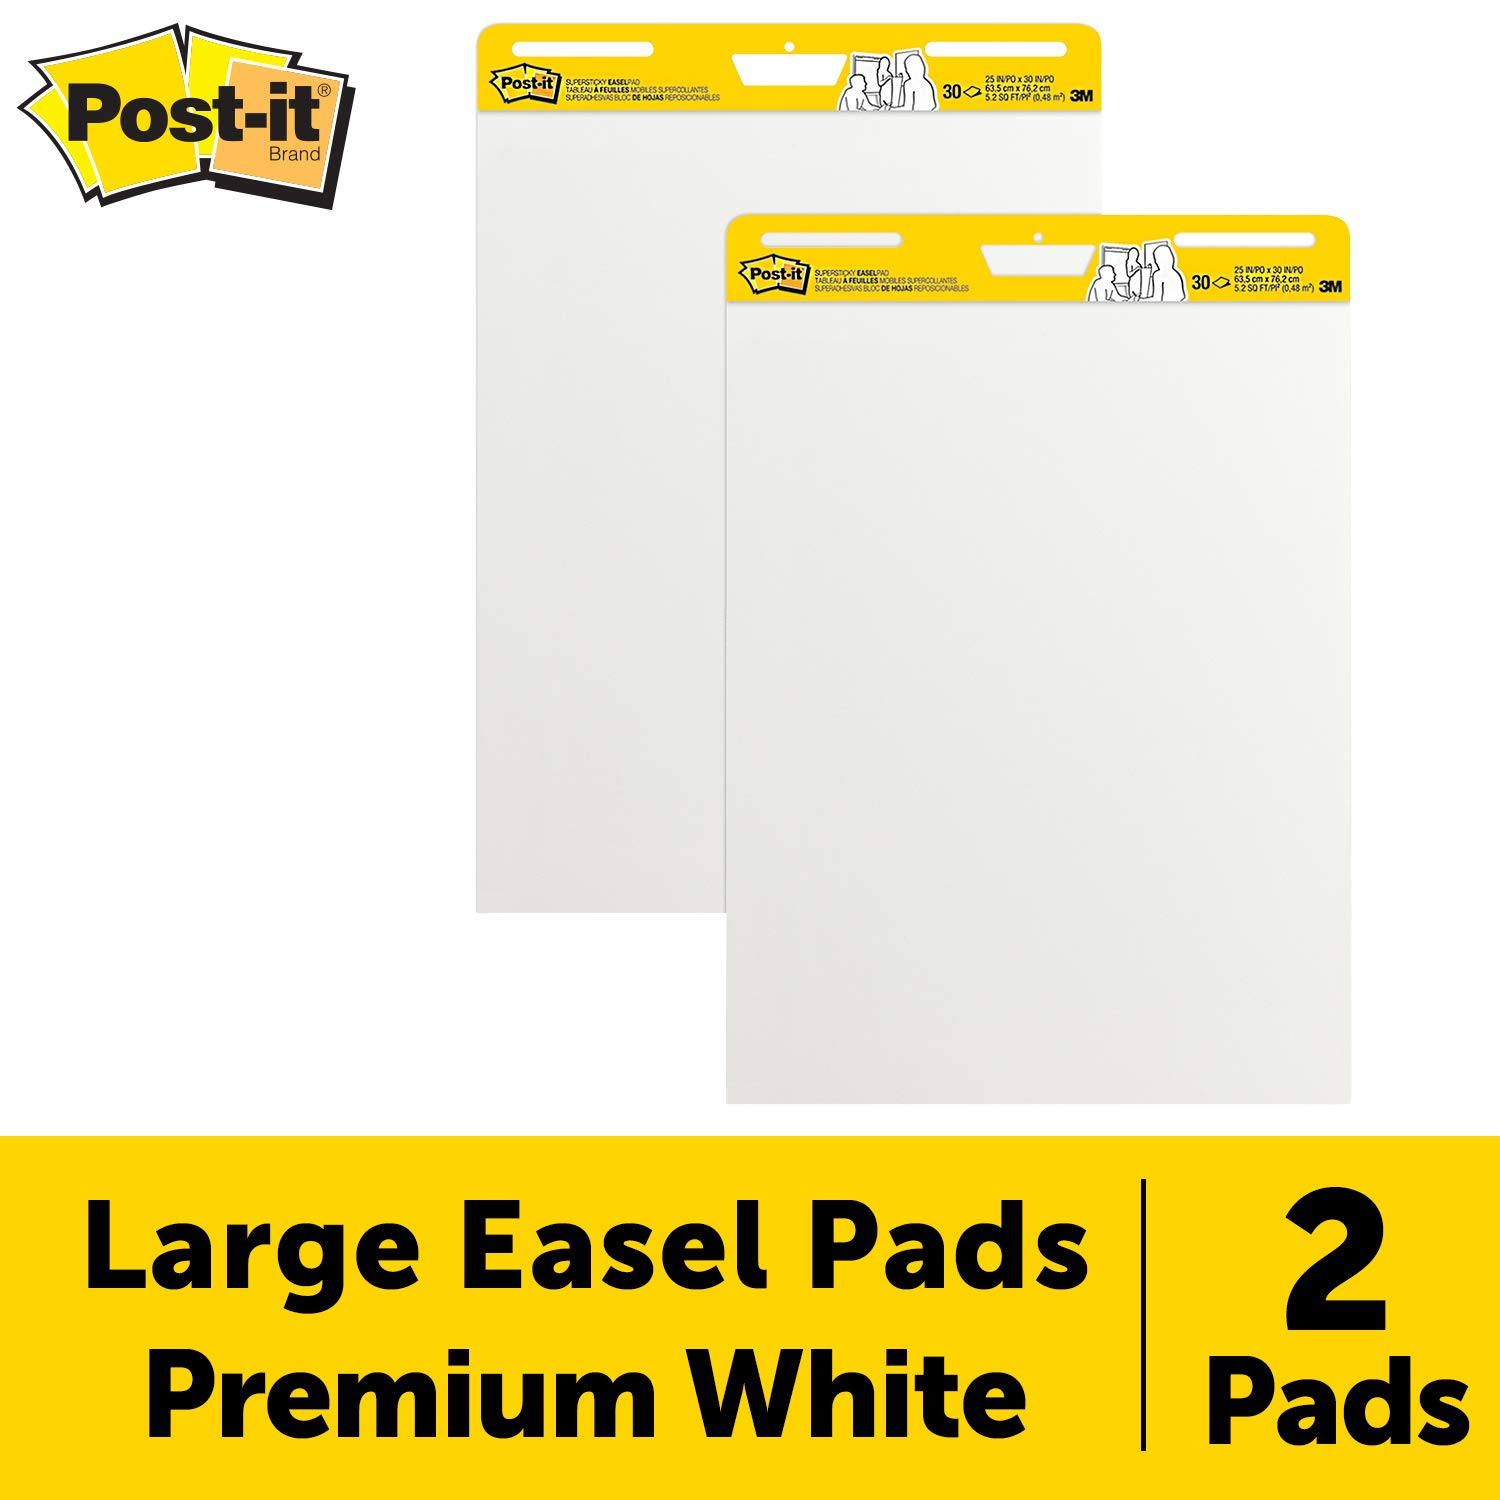 25 x 30 Inches 2 Pads Bullet Tip 30 Sheets//Pad Assorted Colors Large White Premium Self Stick Flip Chart Paper /& Sharpie 22480PP Flip Chart Markers Post-it Super Sticky Easel Pad